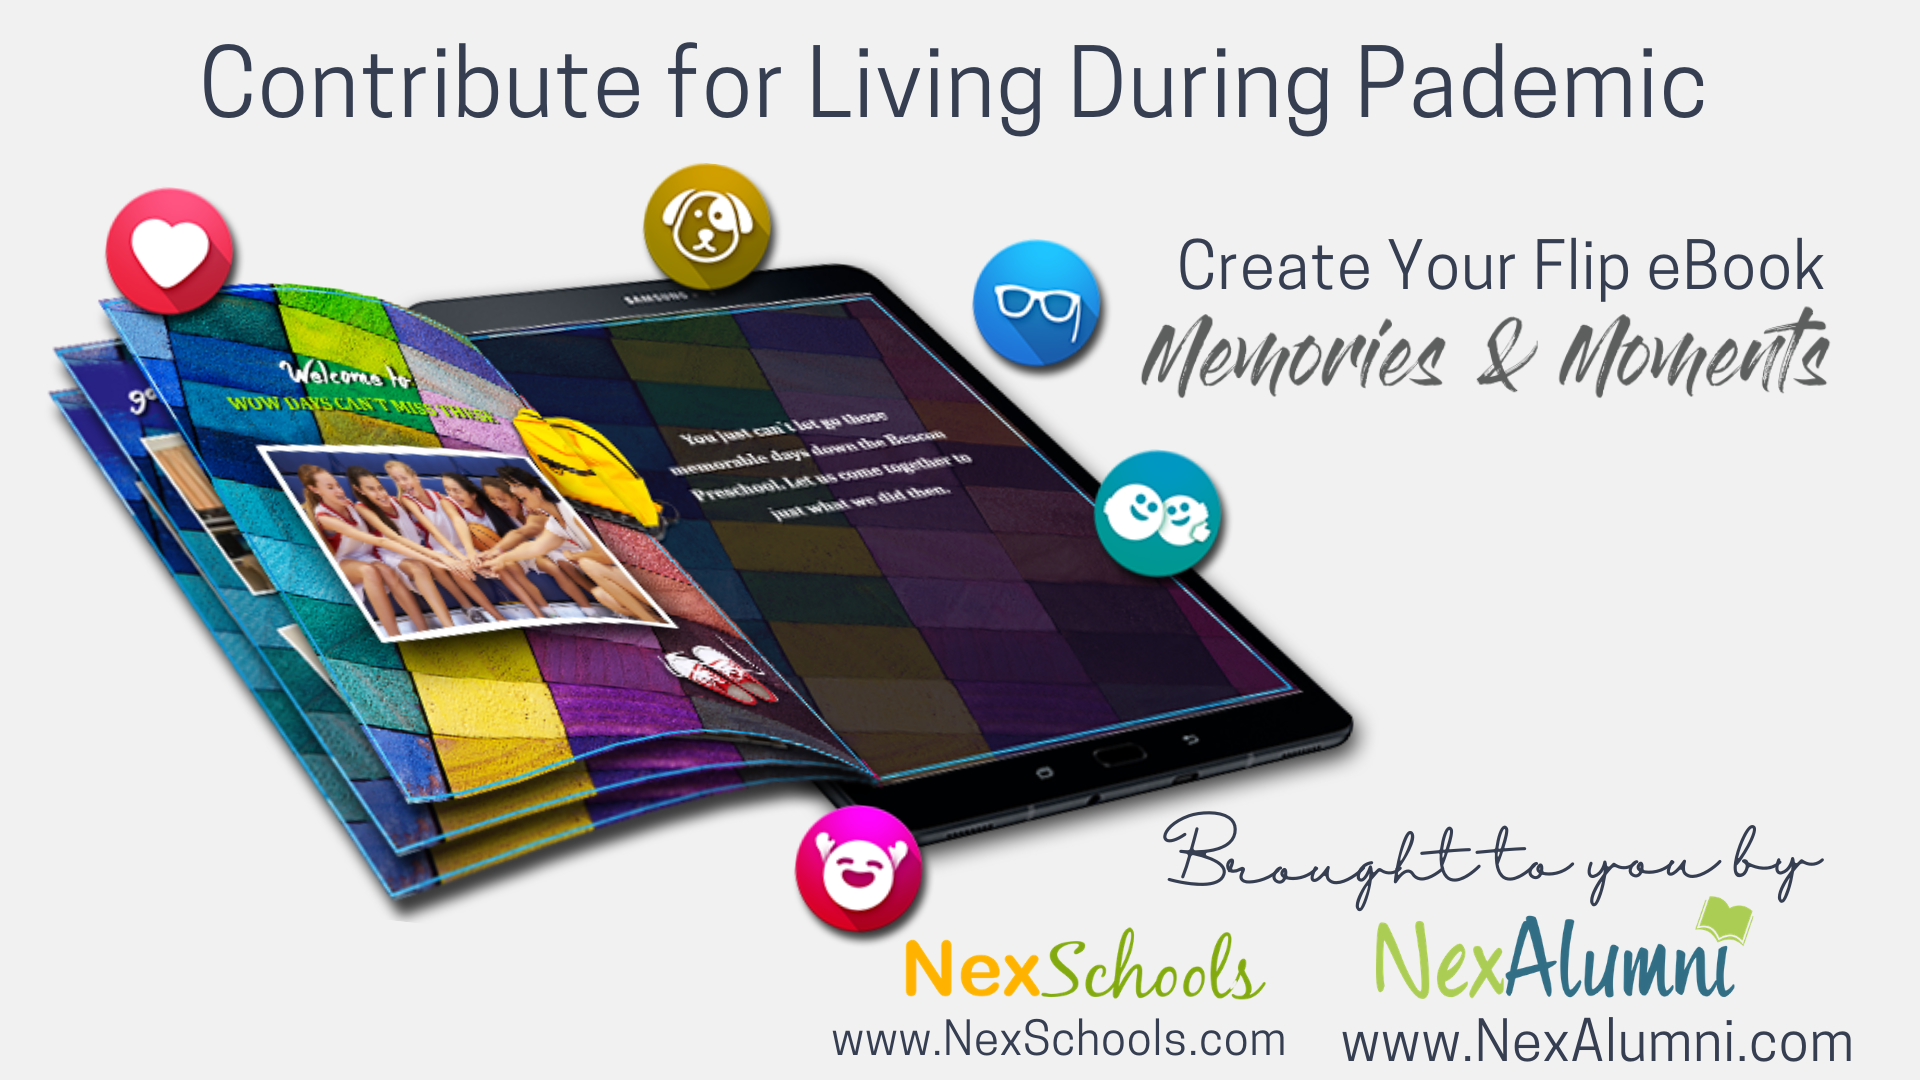 Create flip eBook to preserve your memories during pandemic, Your online classes ebook, your personal home eBook, Family ebook Quarentine memories in an ebook, fully automated eBook